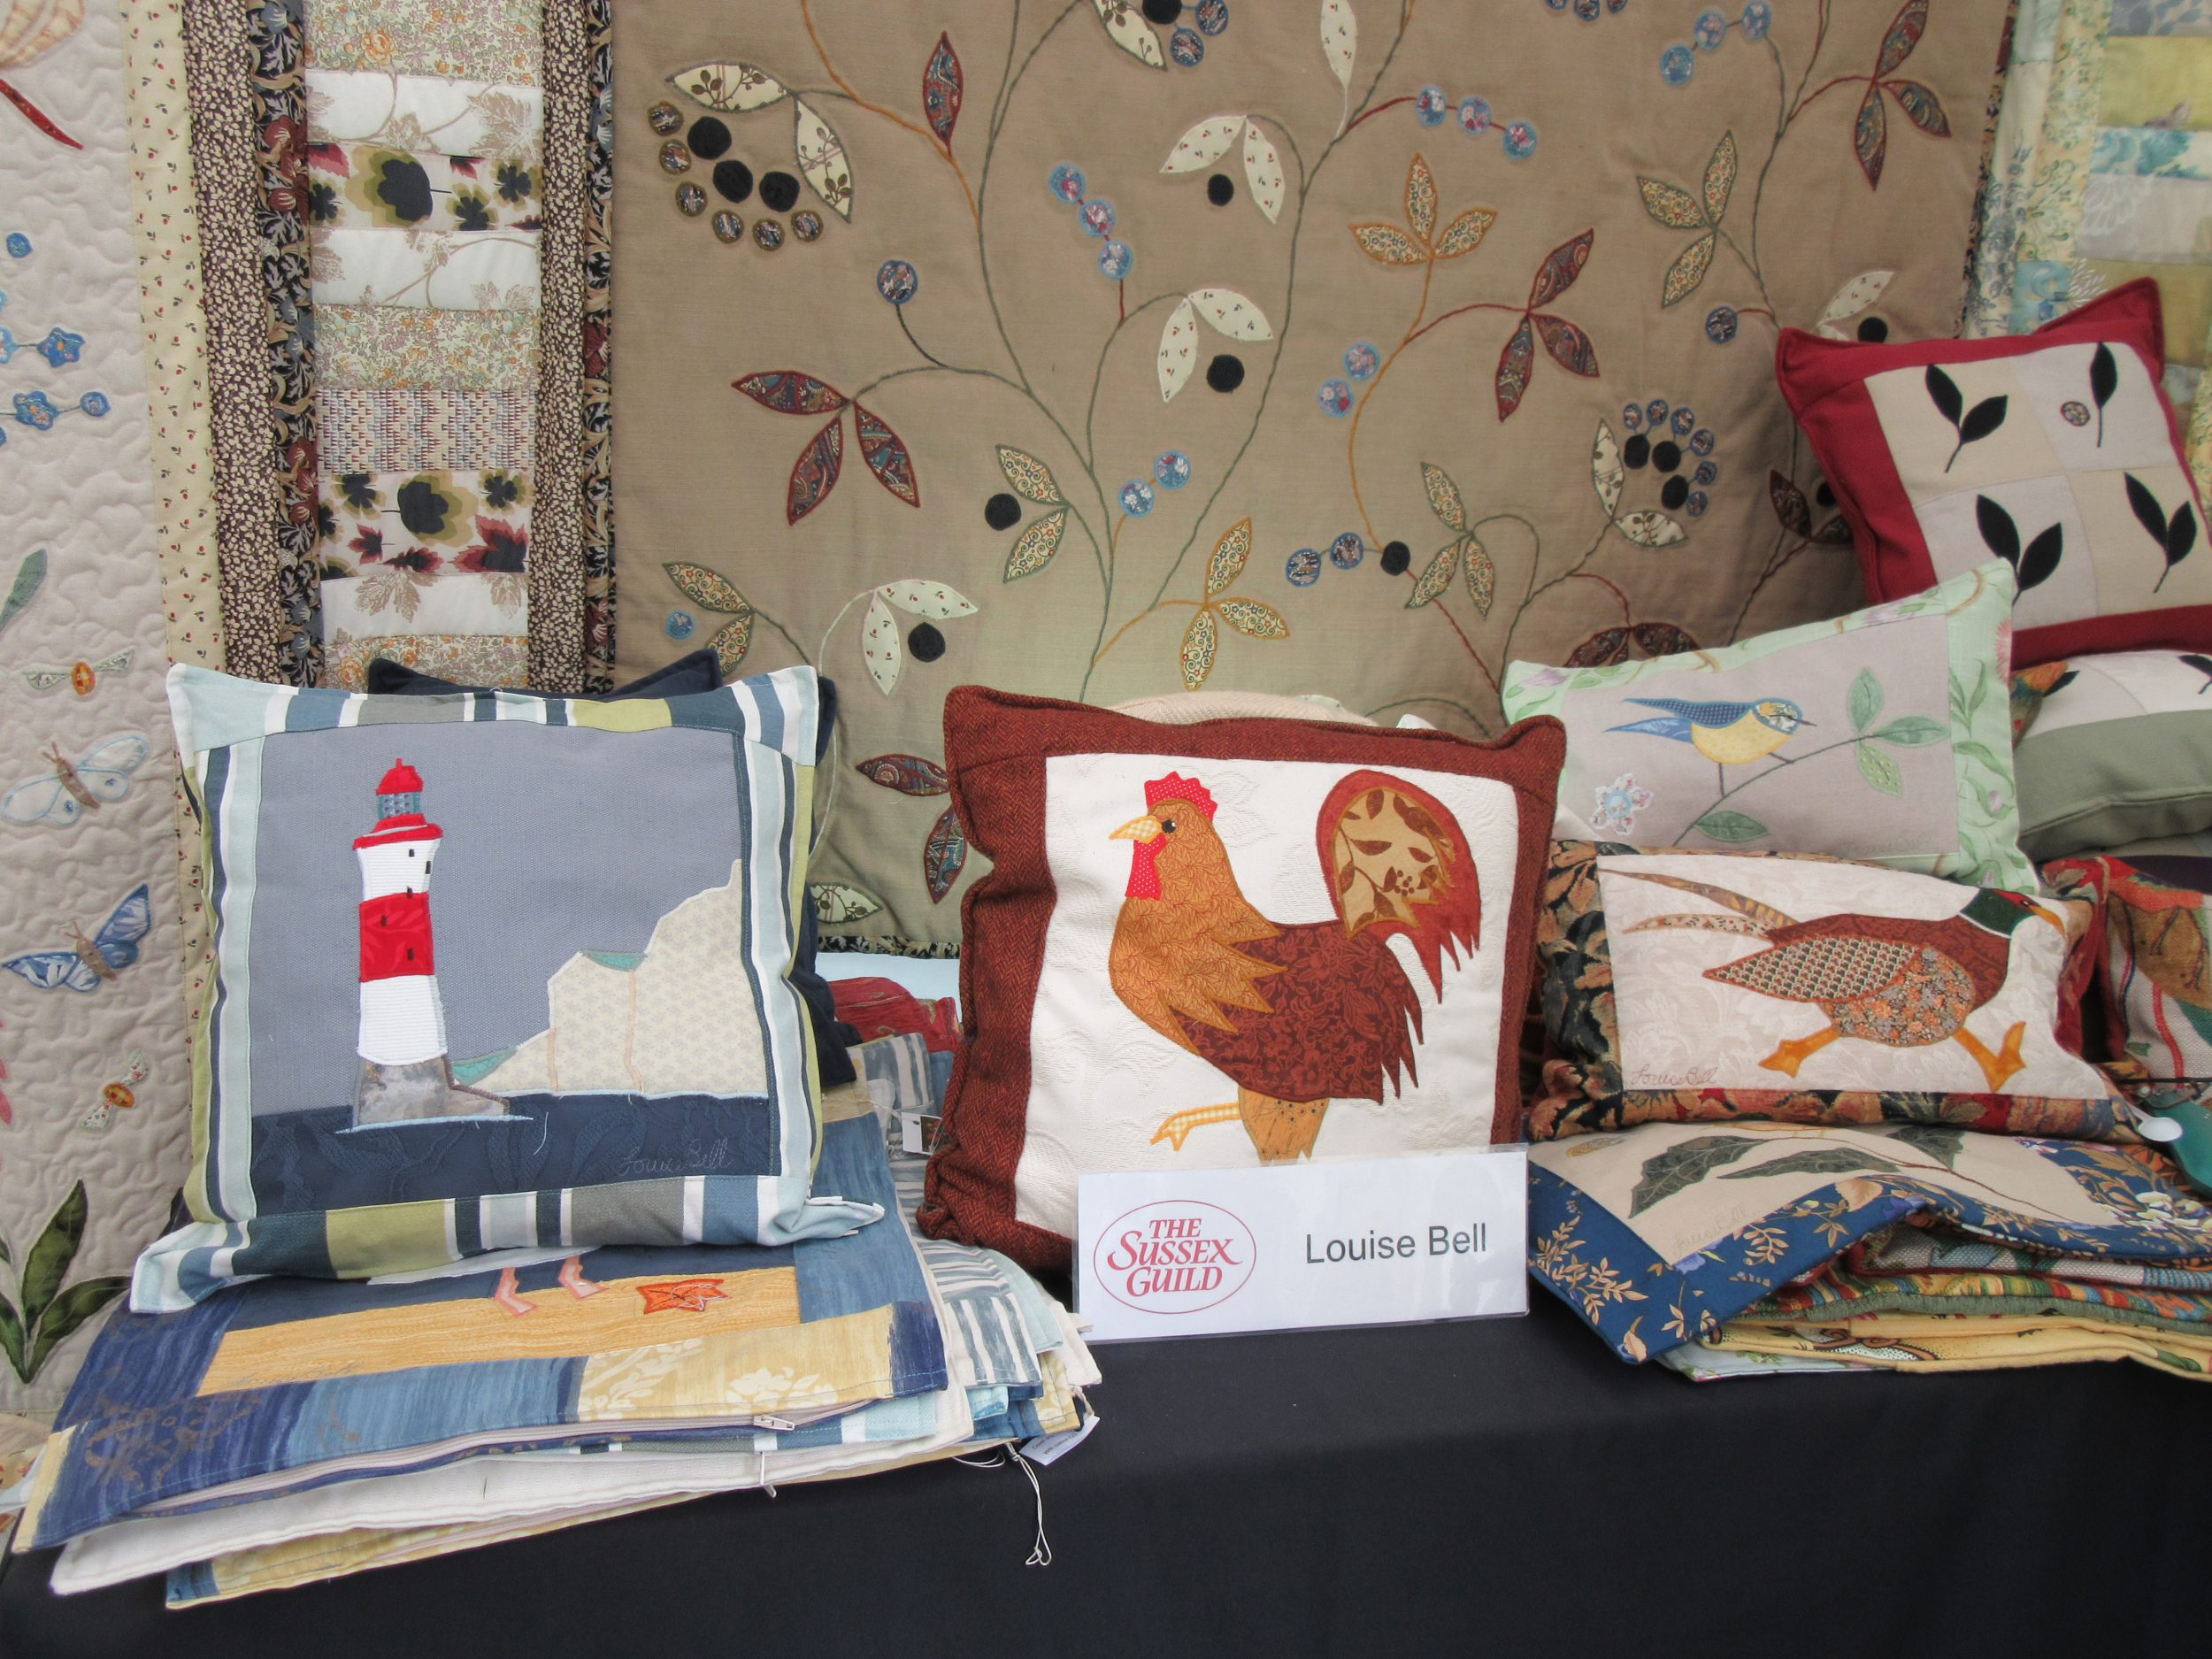 Sussex Guild Craft Show